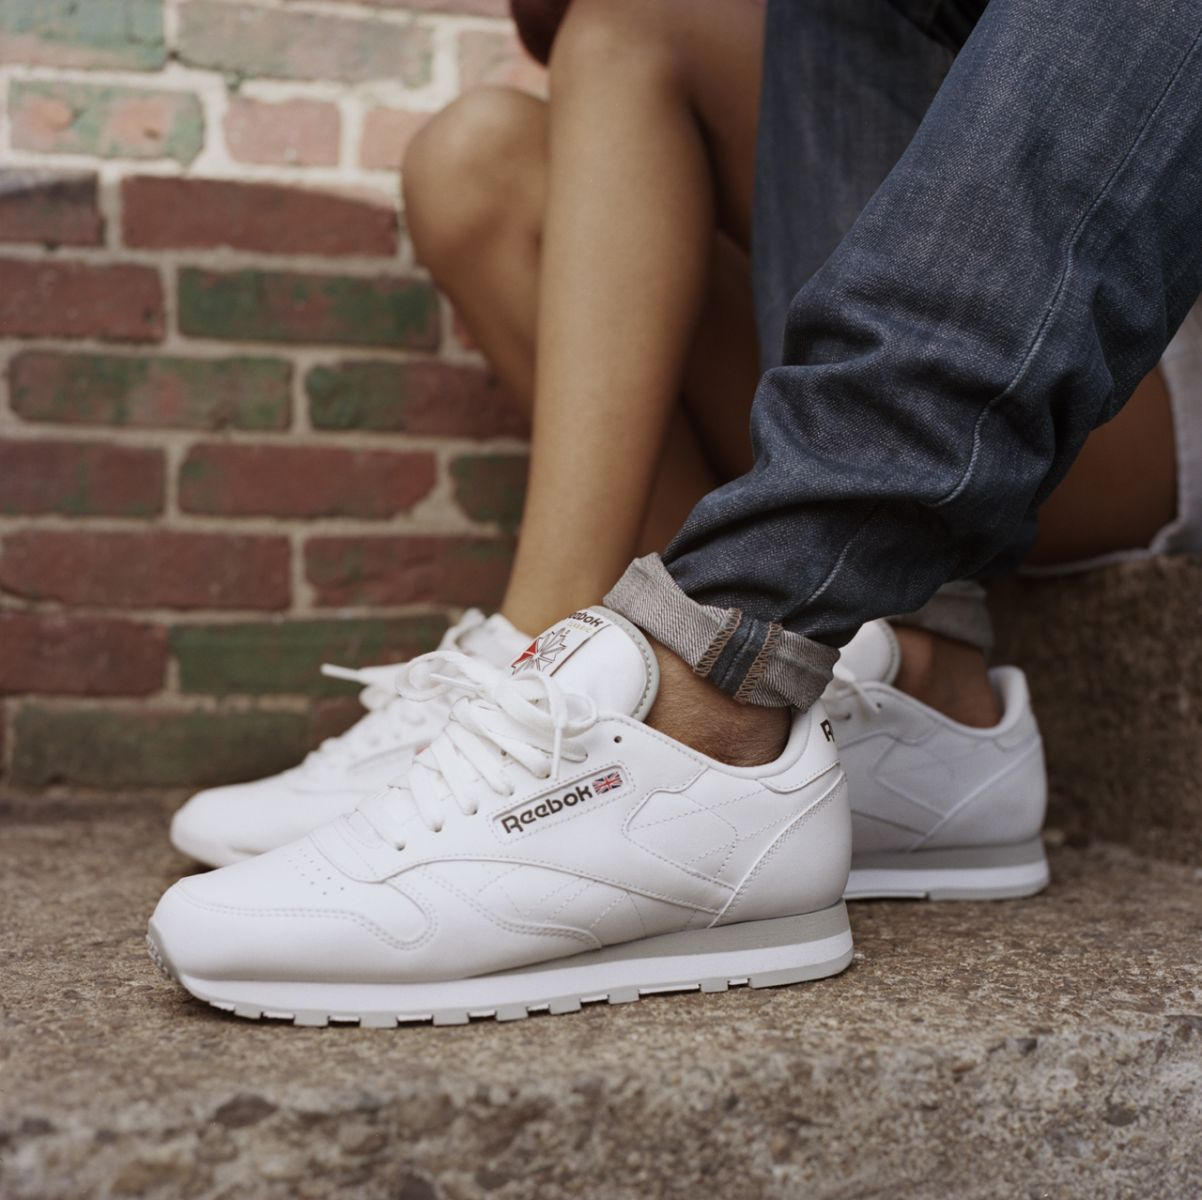 773c6ec6df0 Any love for Reebok Classic Leather     streetwear